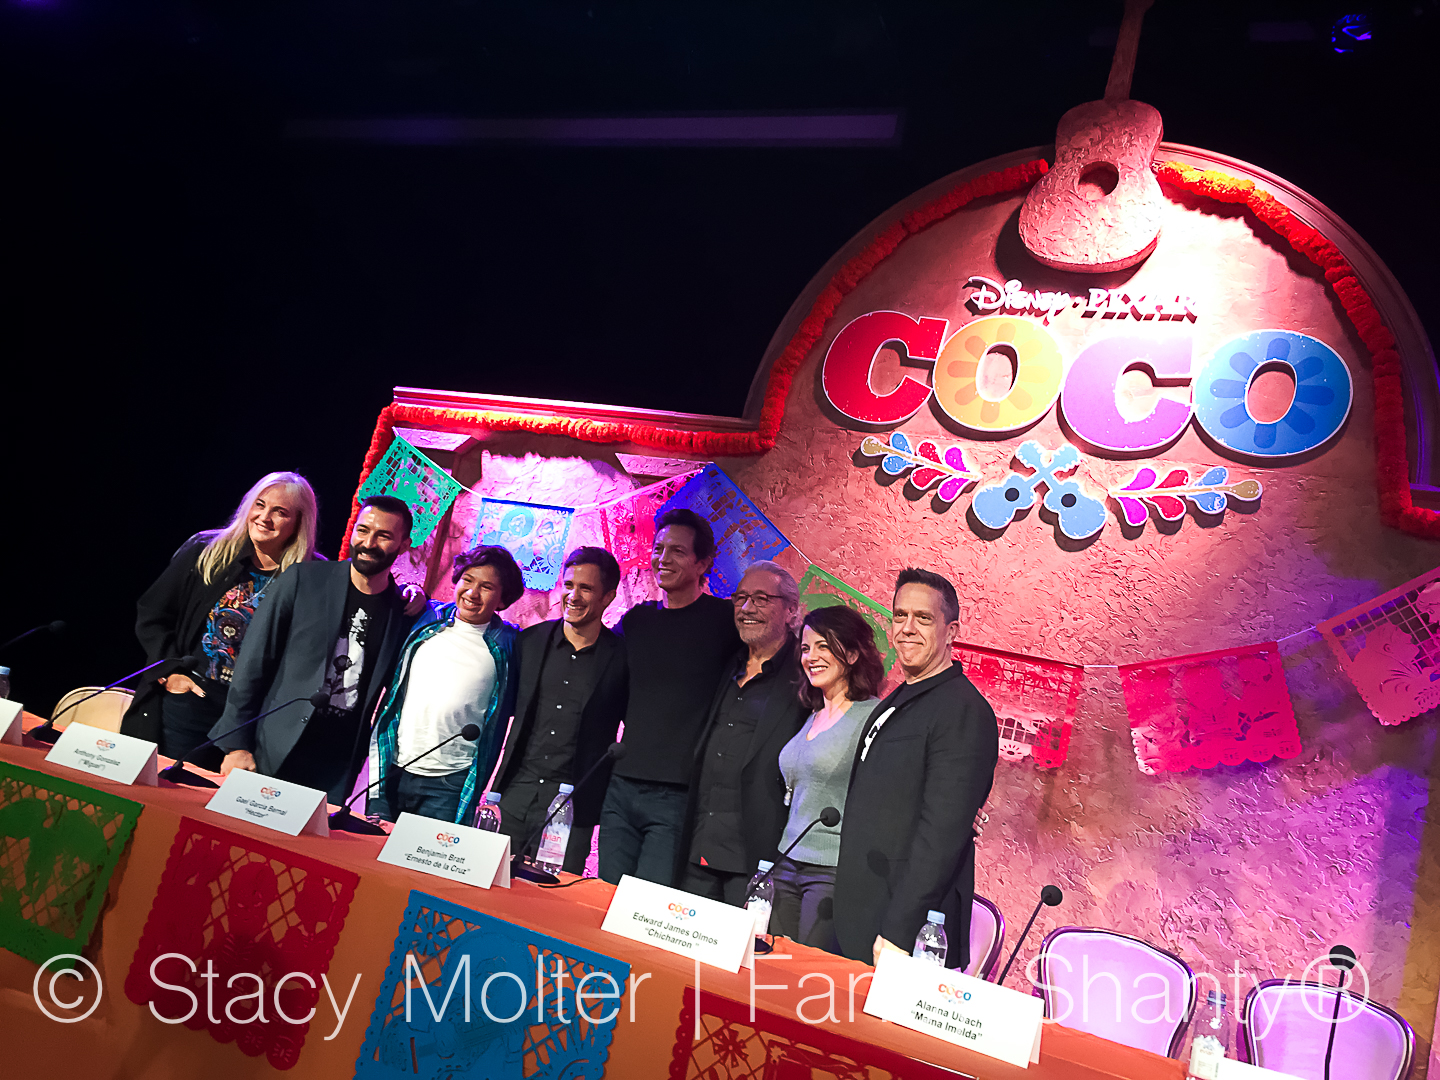 Disney Pixar Coco Press Conference – Celebrating Mexican Culture